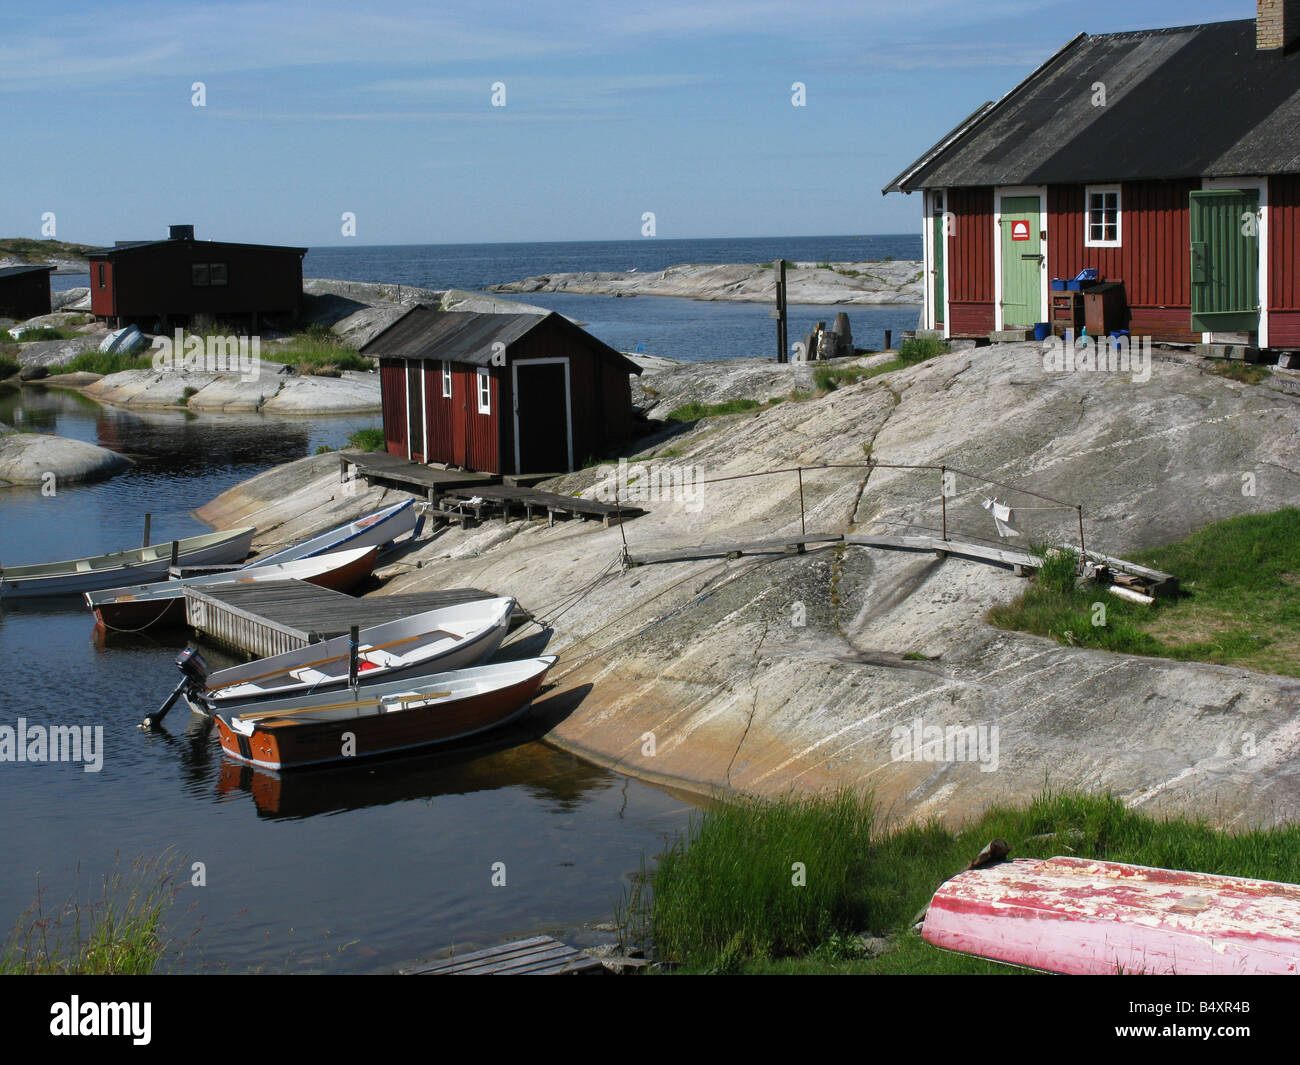 Boats at a natural harbour in the Stockholm archipelago - Stock Image